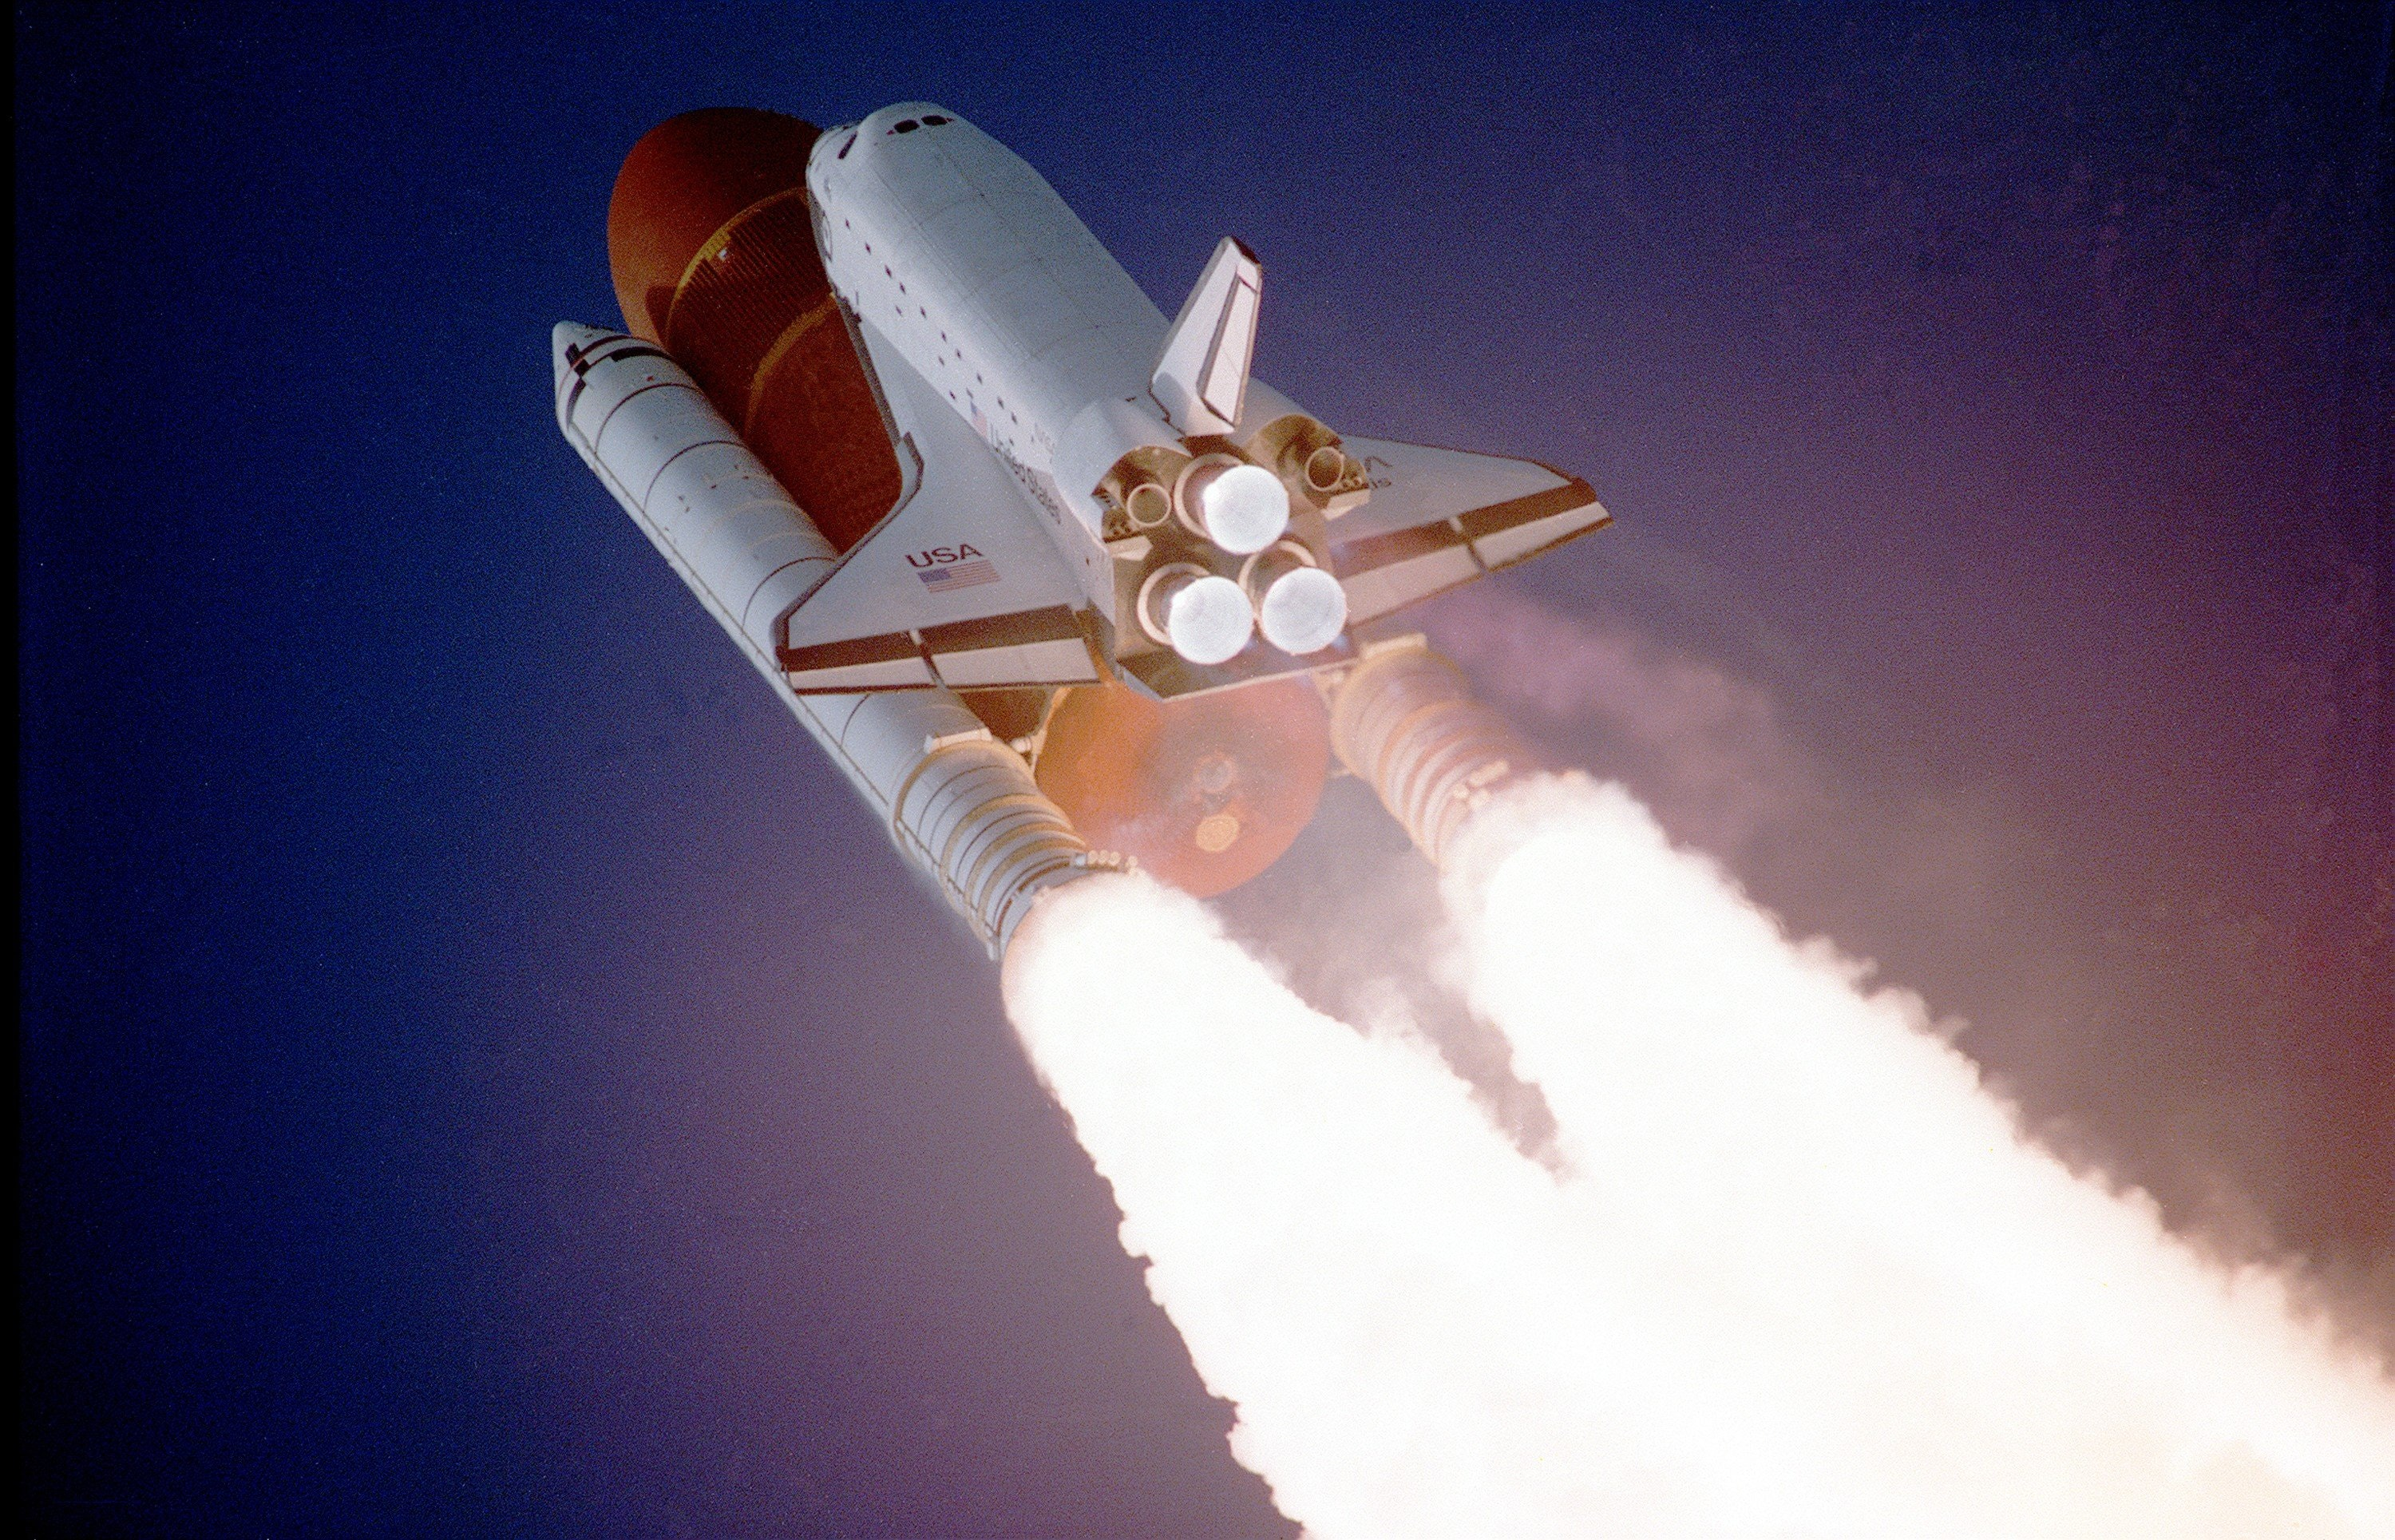 Blasting off on space shuttle